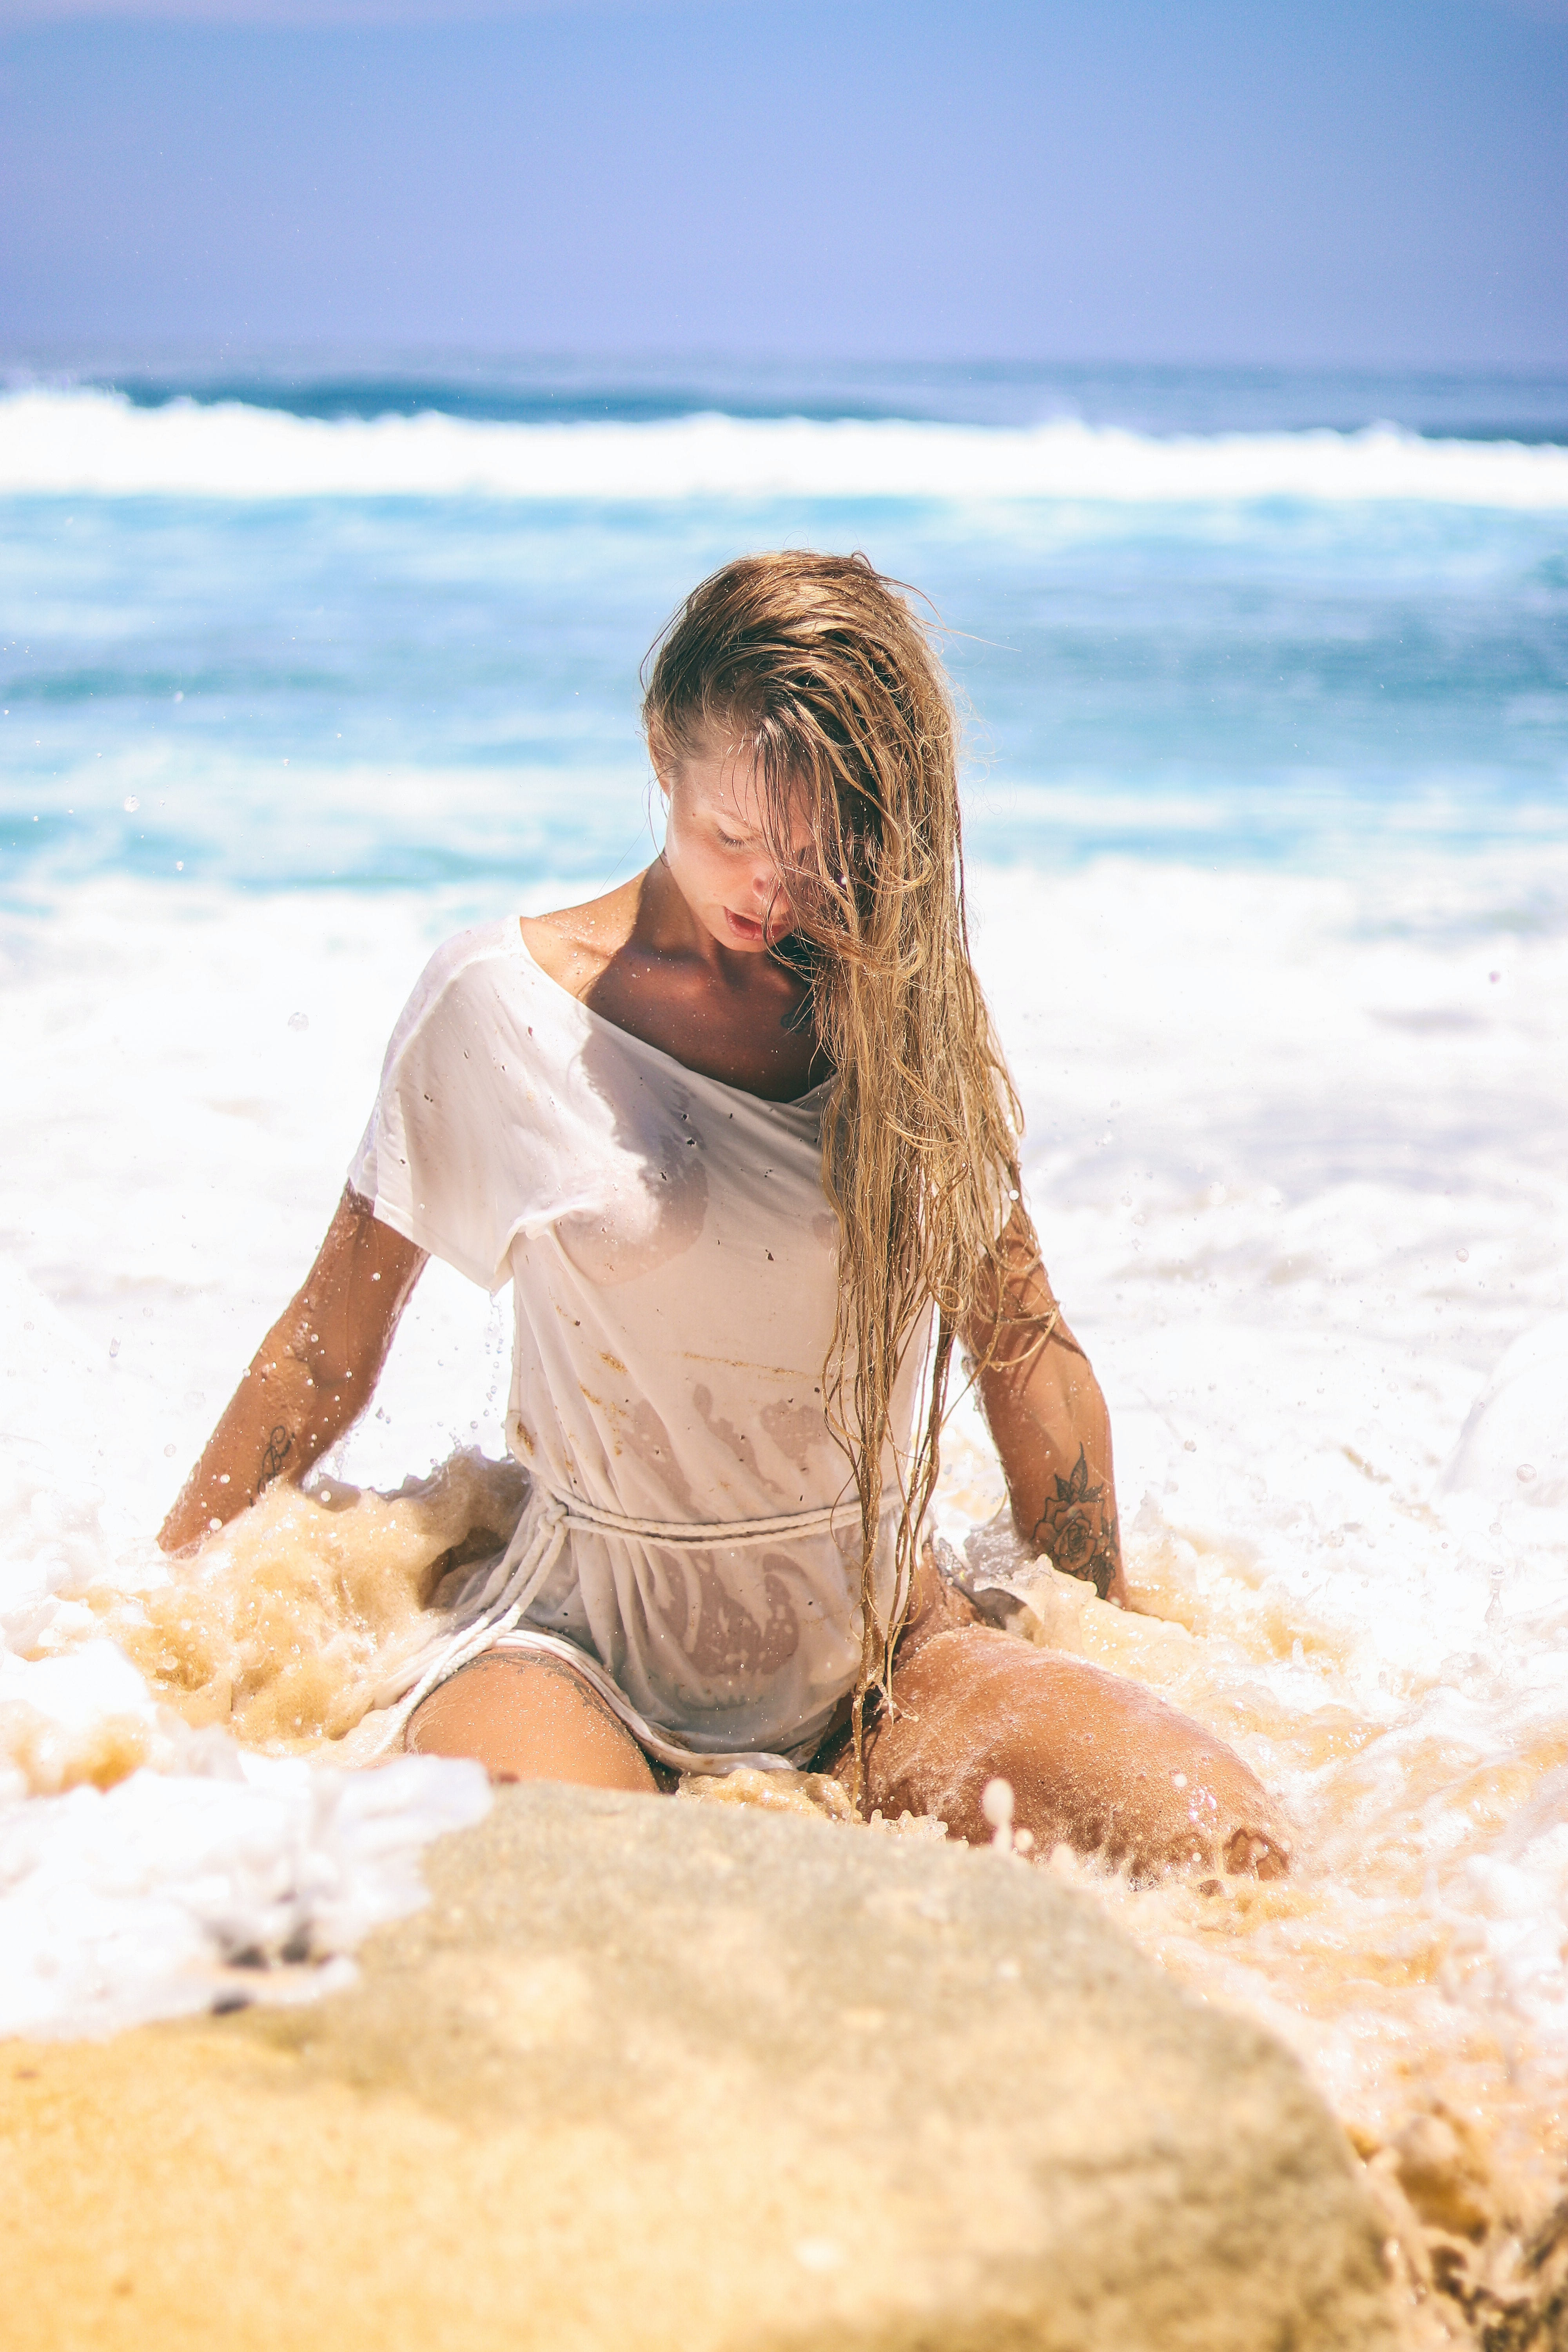 woman in white top sitting on sand near body of water